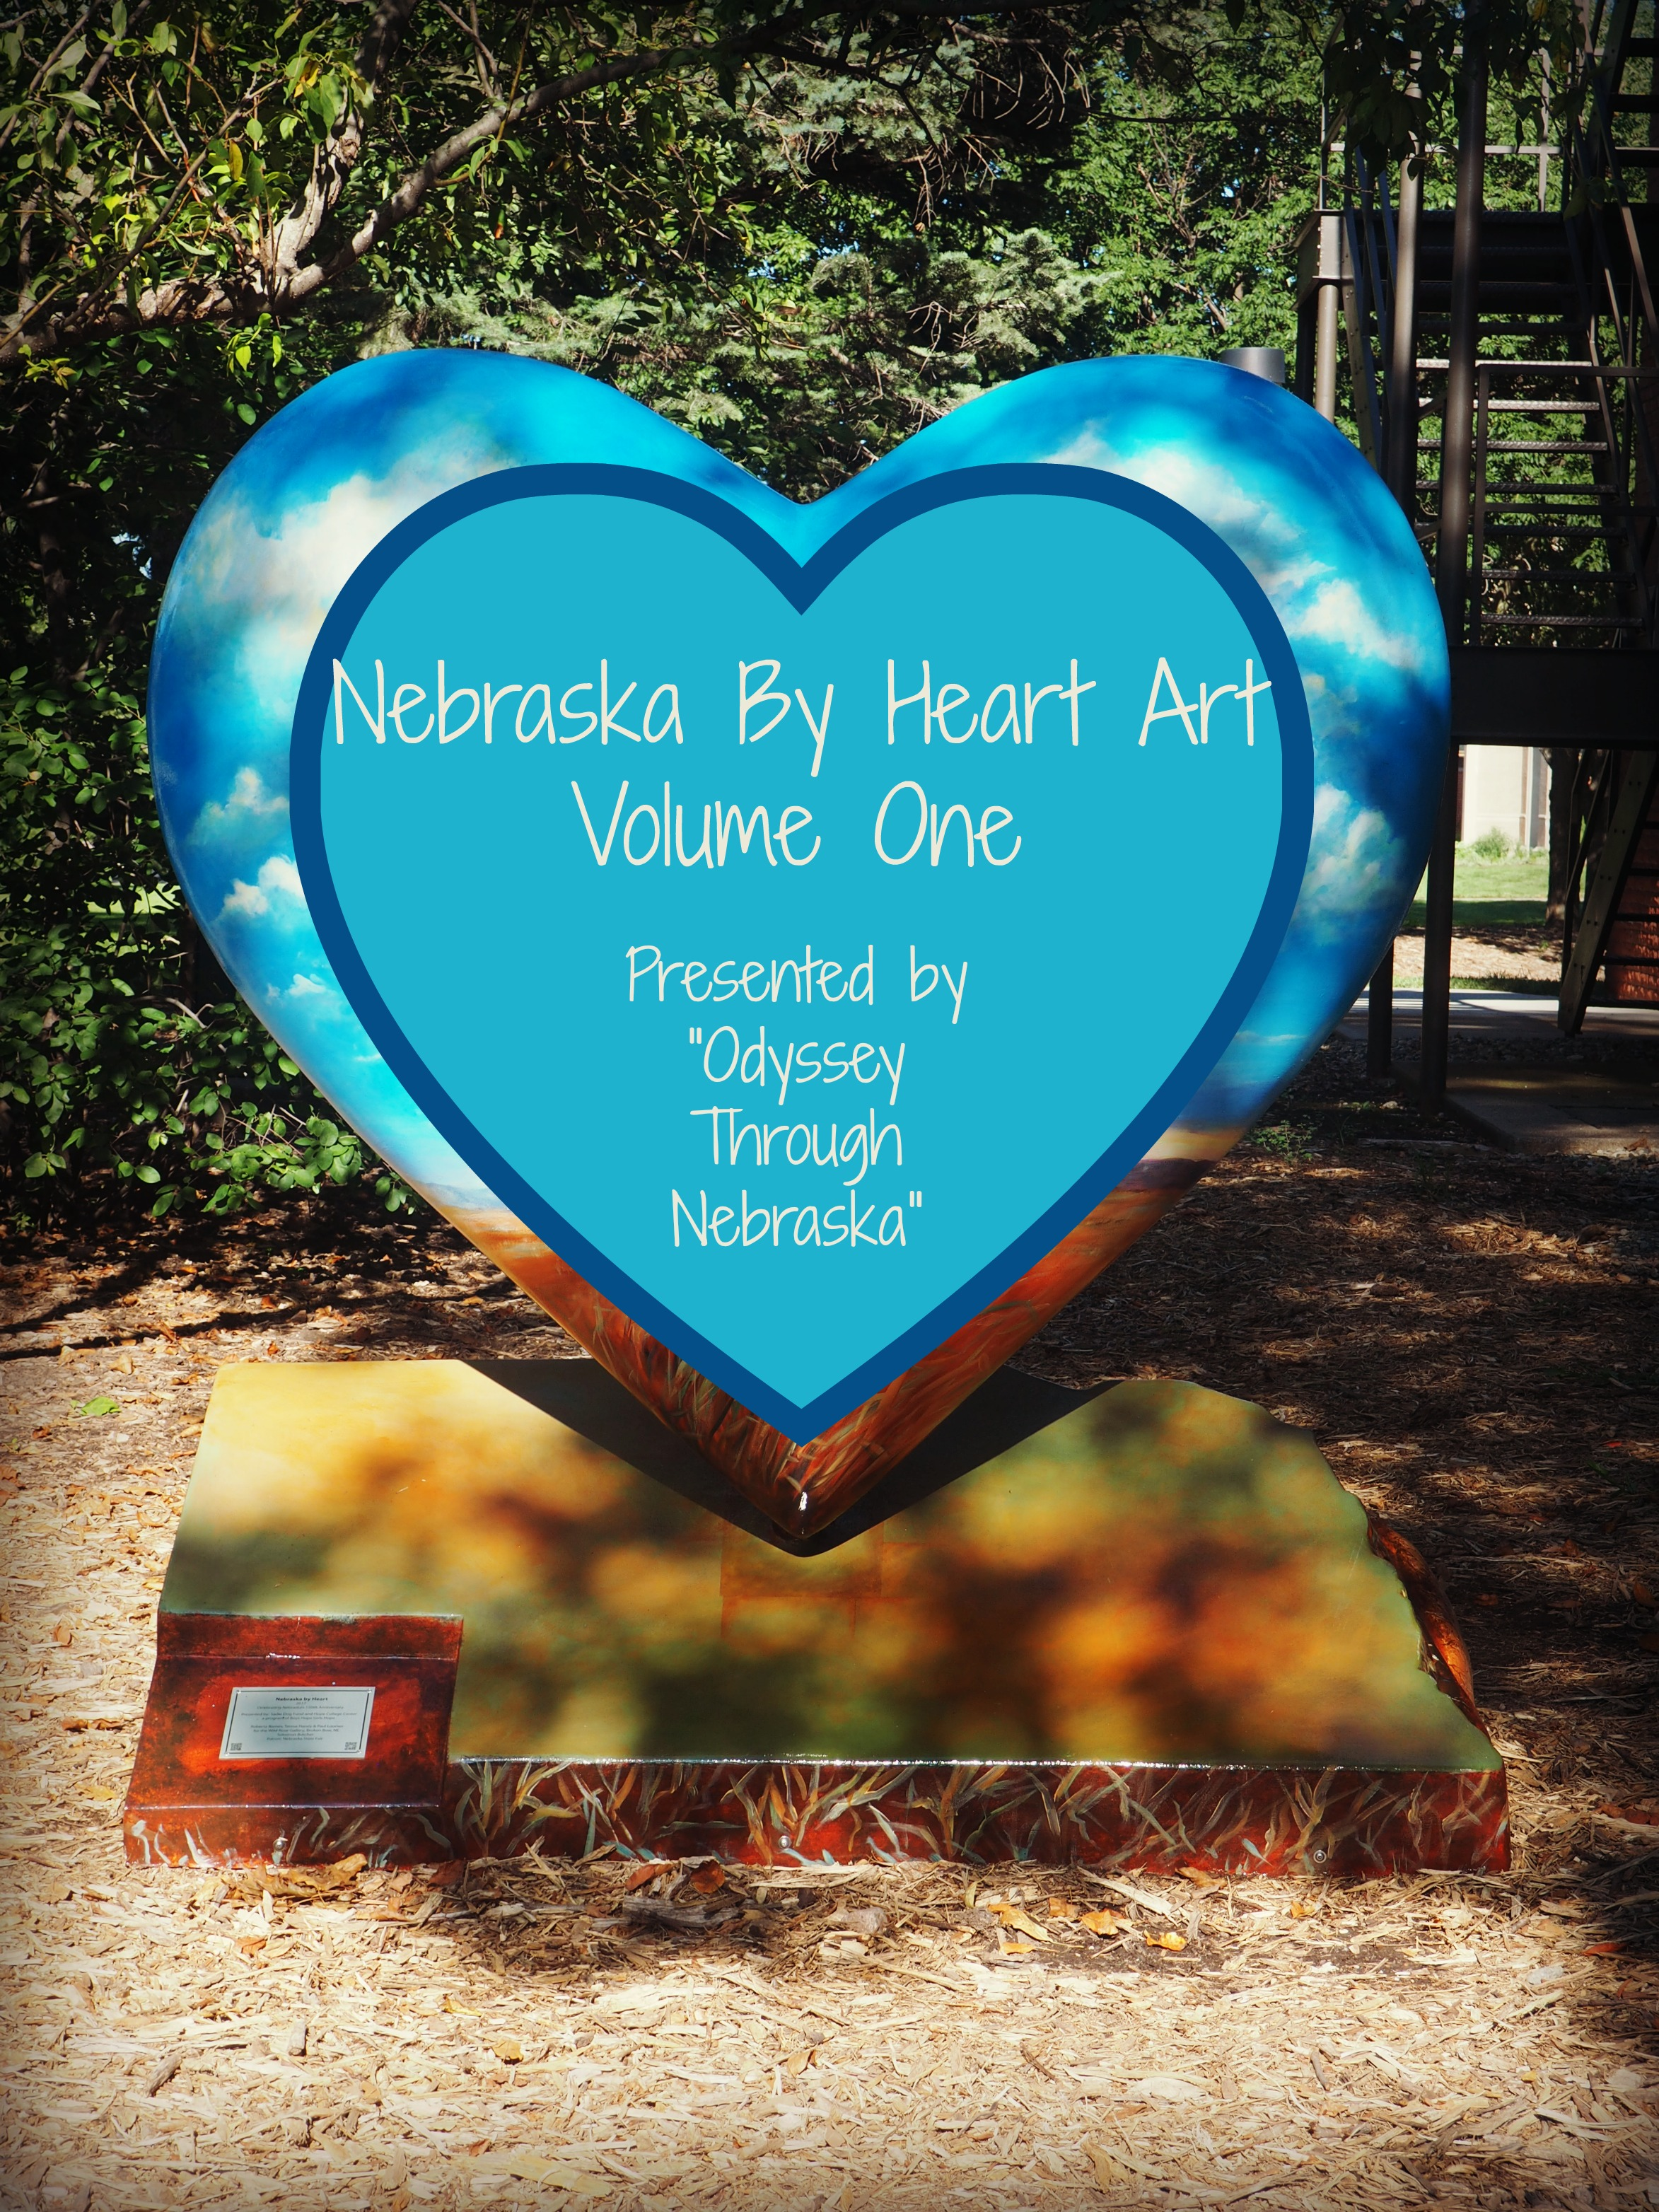 Nebraska By Heart is a Public Art Project for NE150